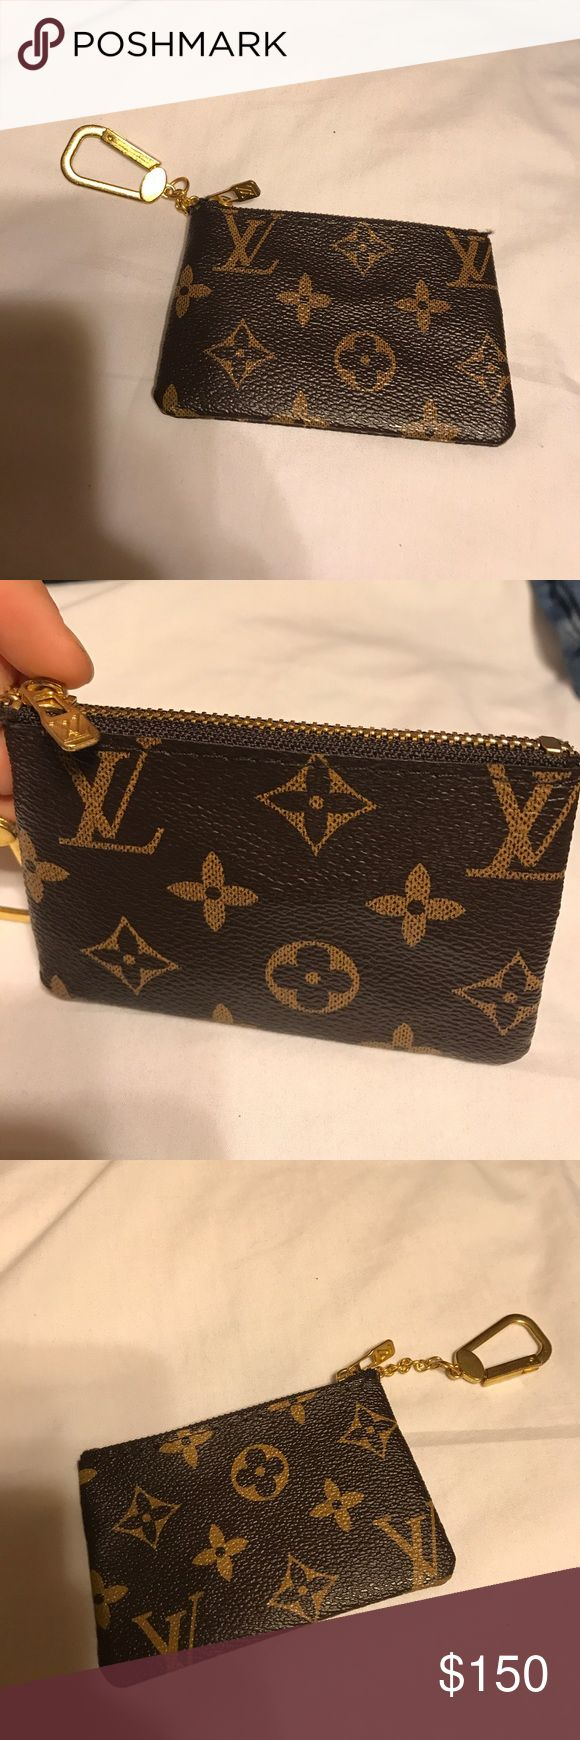 LV key monogram pouch Cute and Small Louis Vuitton keychain/pouch, perfect for holding cards or small items, open to offers!! Inspired by!! Louis Vuitton Bags Wallets